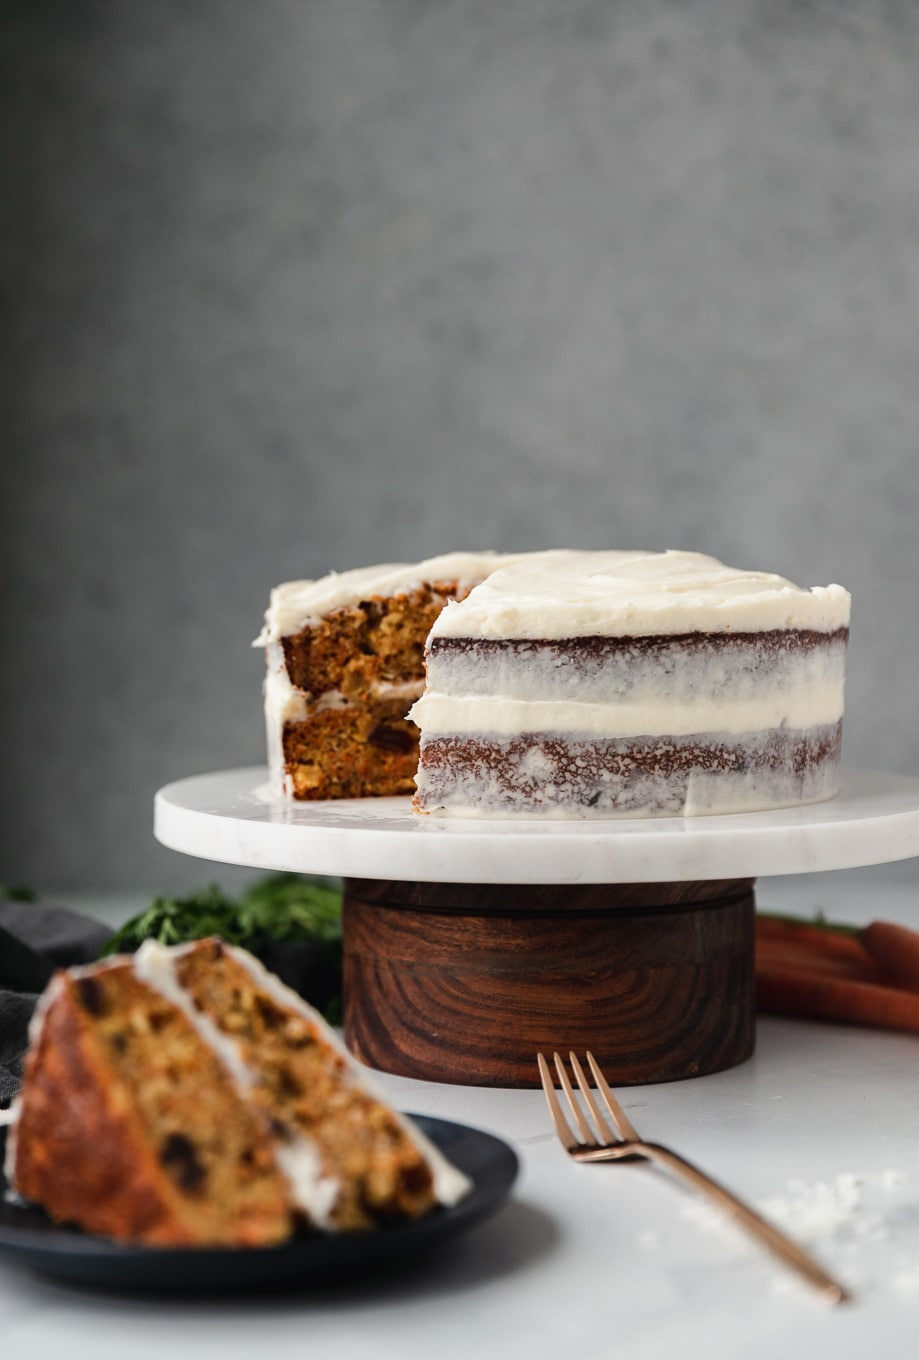 Forward facing shot of a carrot cake on a marble and wooden cake stand with a slice of cake on a black plate in front of it